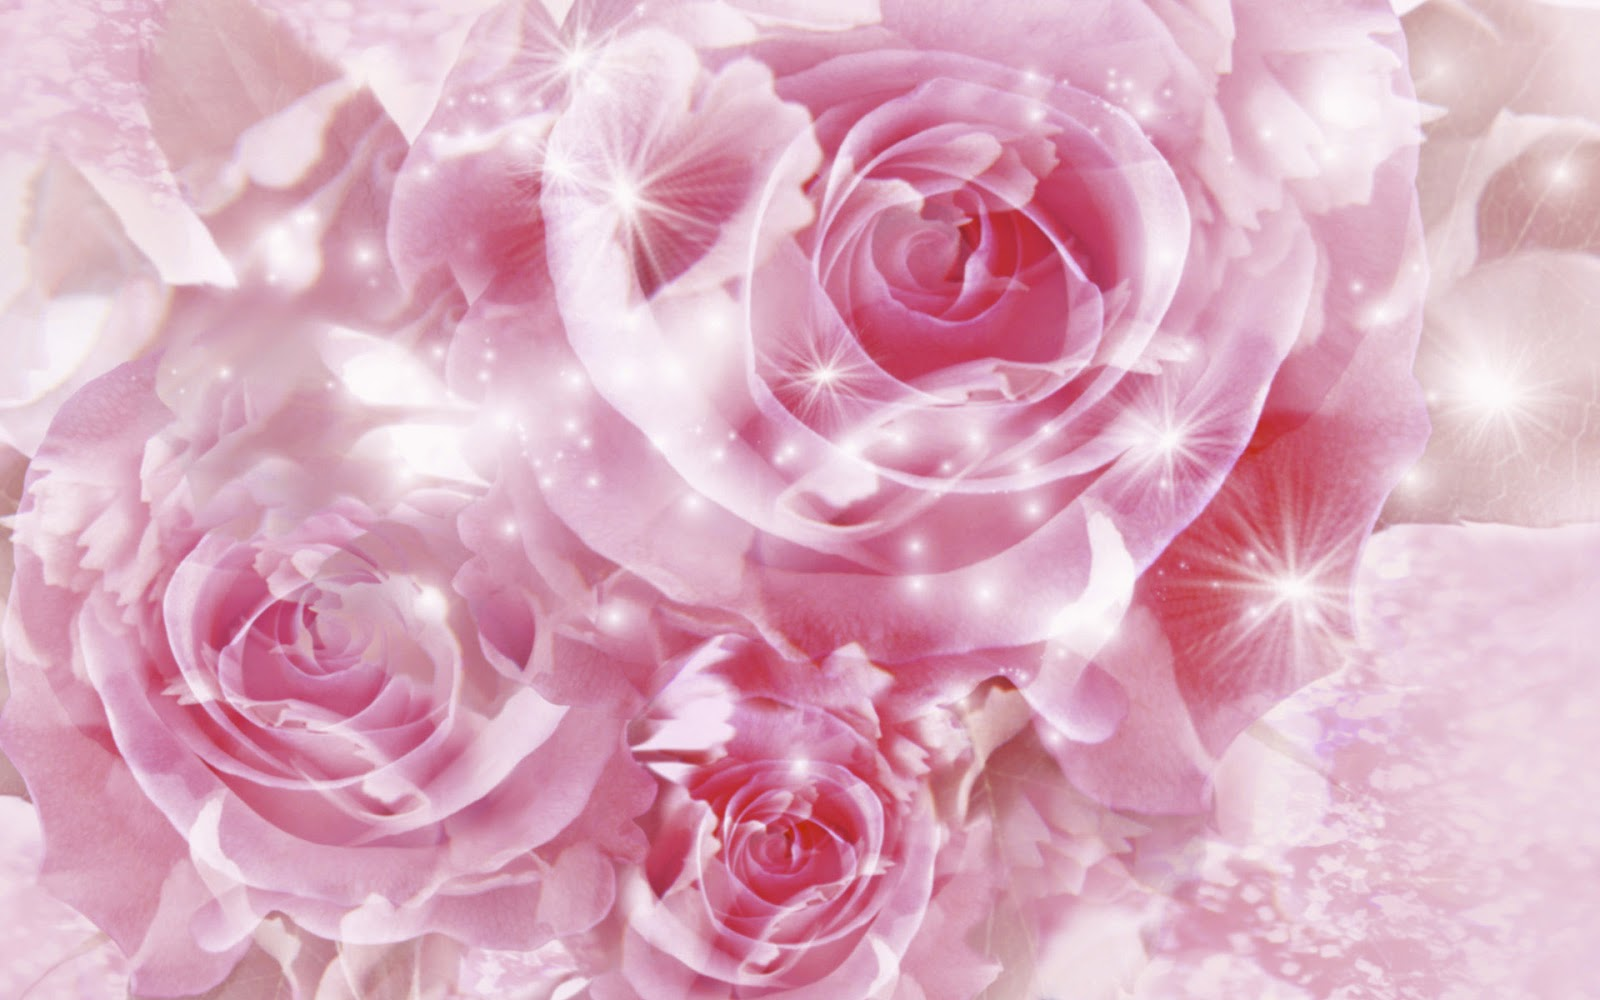 http://1.bp.blogspot.com/-384usWj4KwE/T7he1rPeDKI/AAAAAAAAAmg/x-TE7lHZxPY/s1600/free-rose-wallpaper-download.jpg